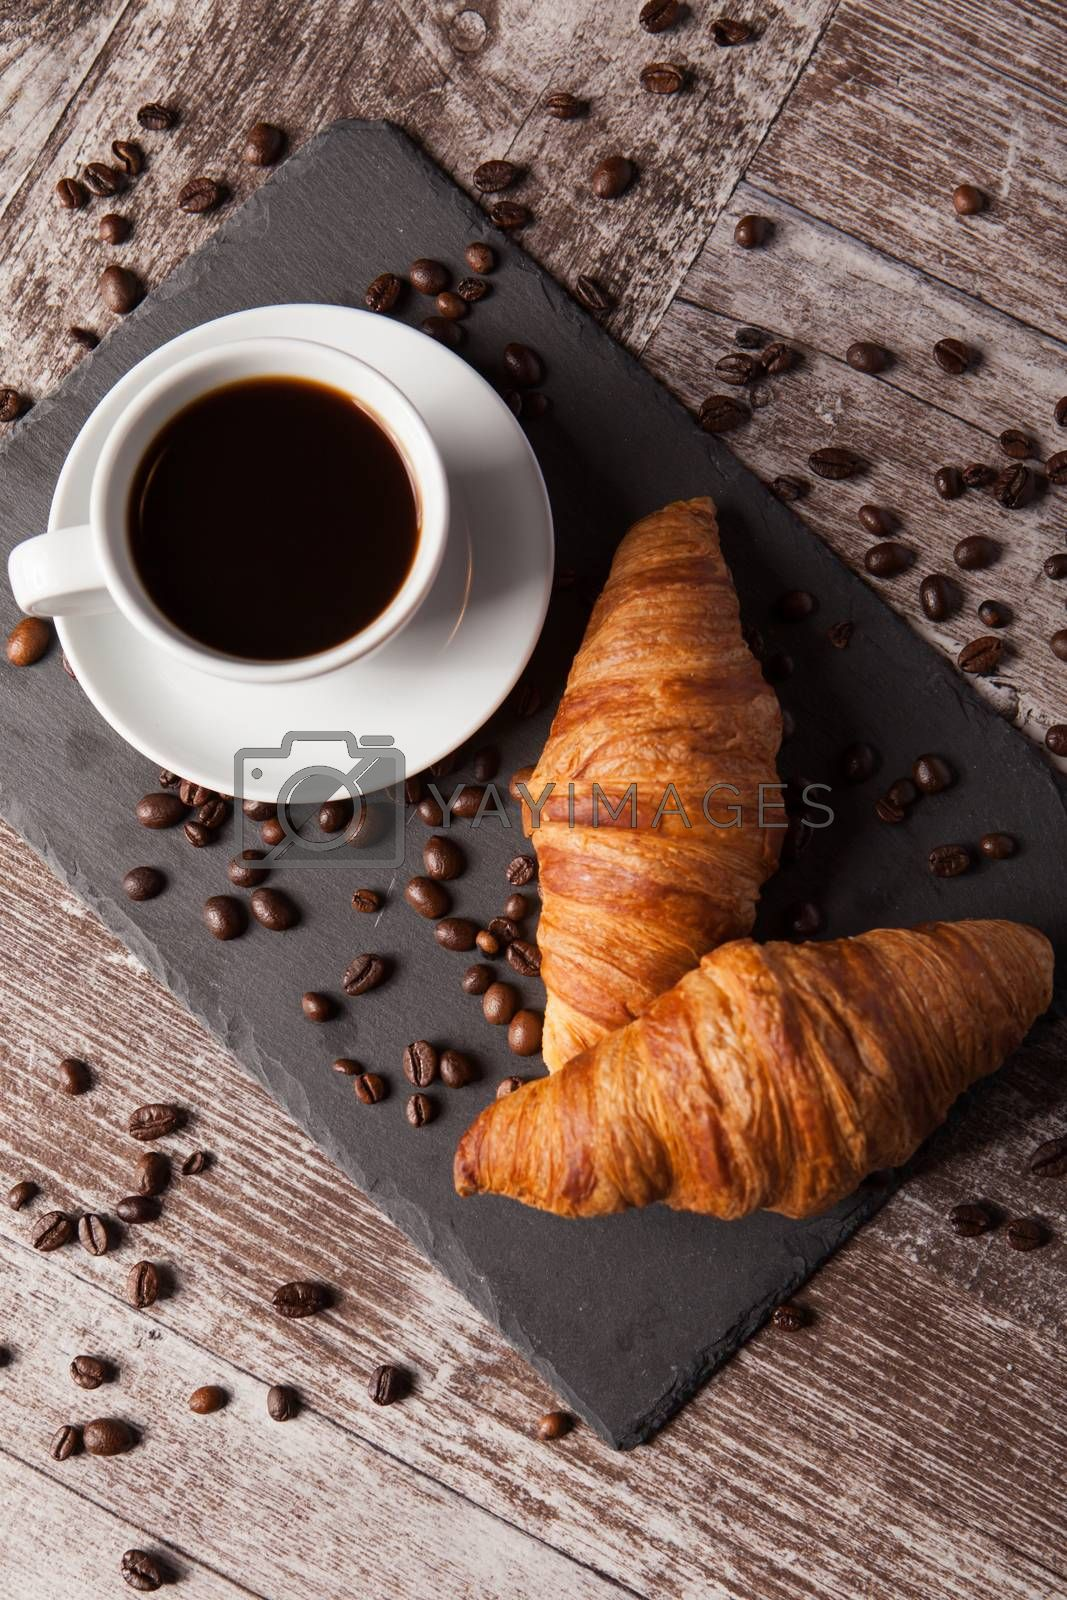 Cup of coffee and spreaded coffee beans with fresh croissants by DCStudio